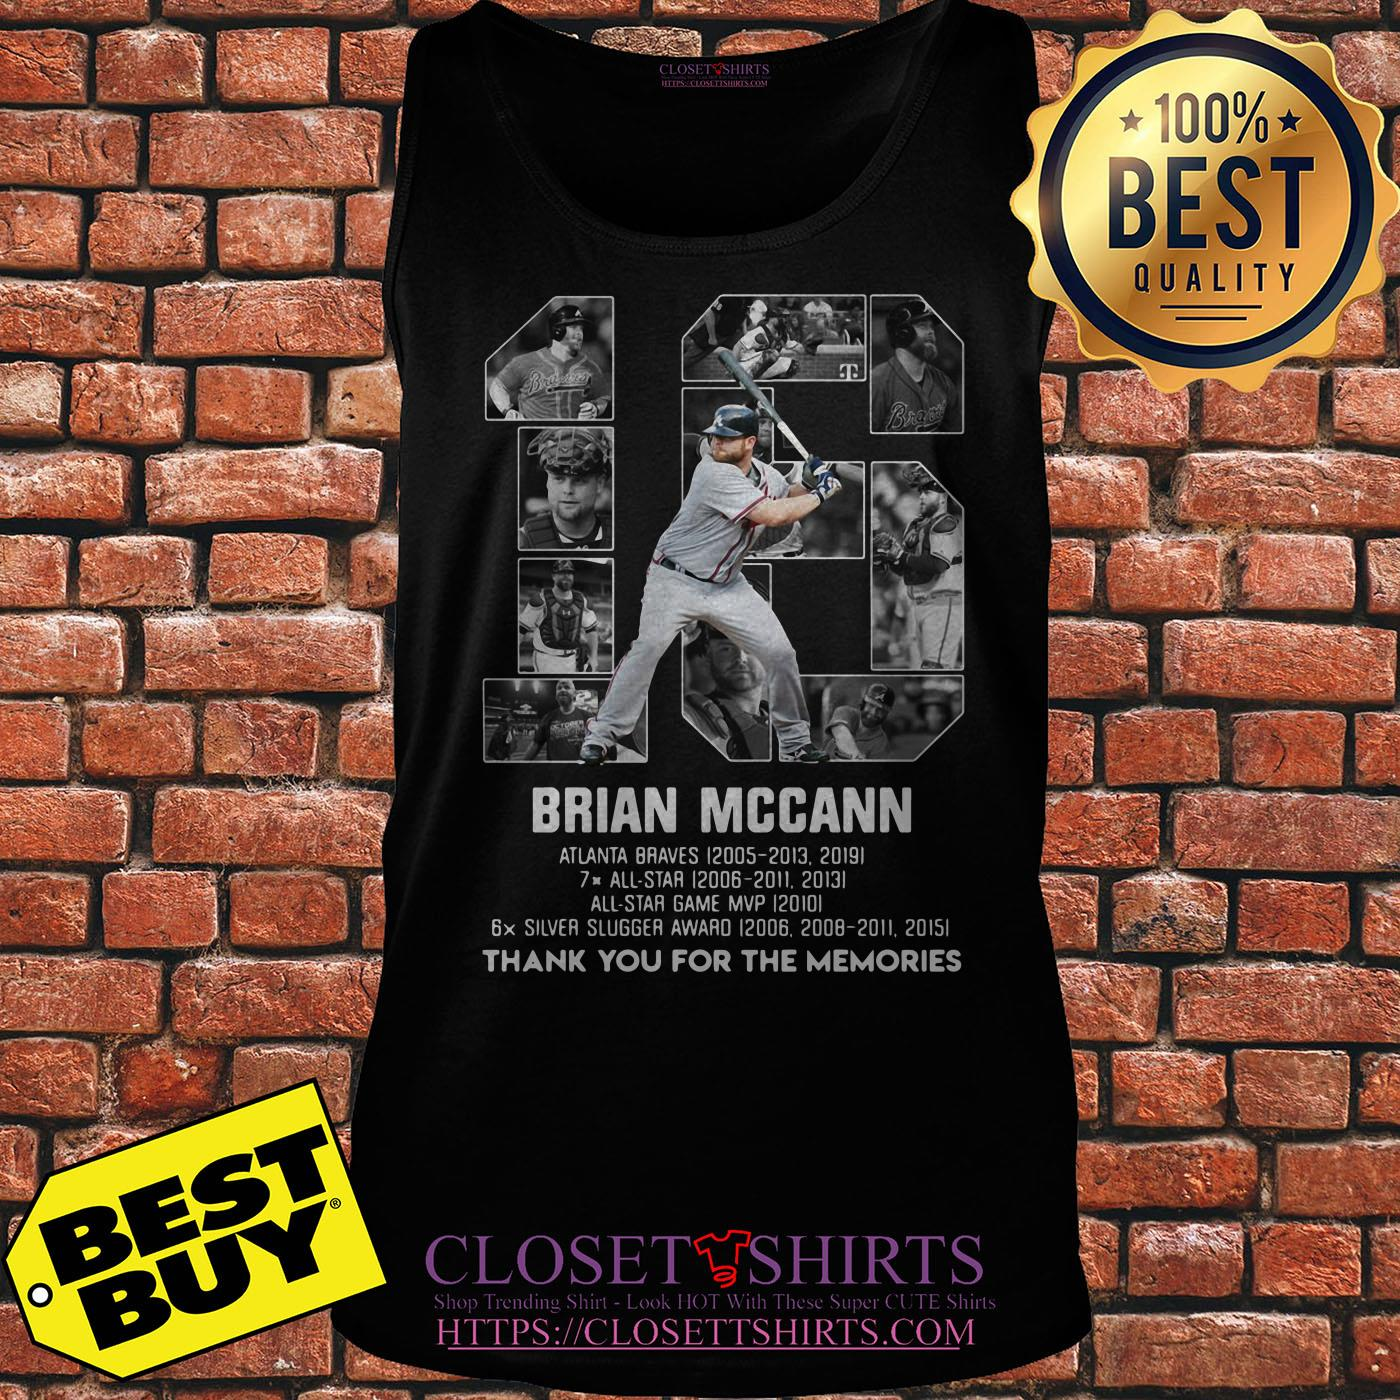 Brian Mccann Signature Thank You For The Memories tank top